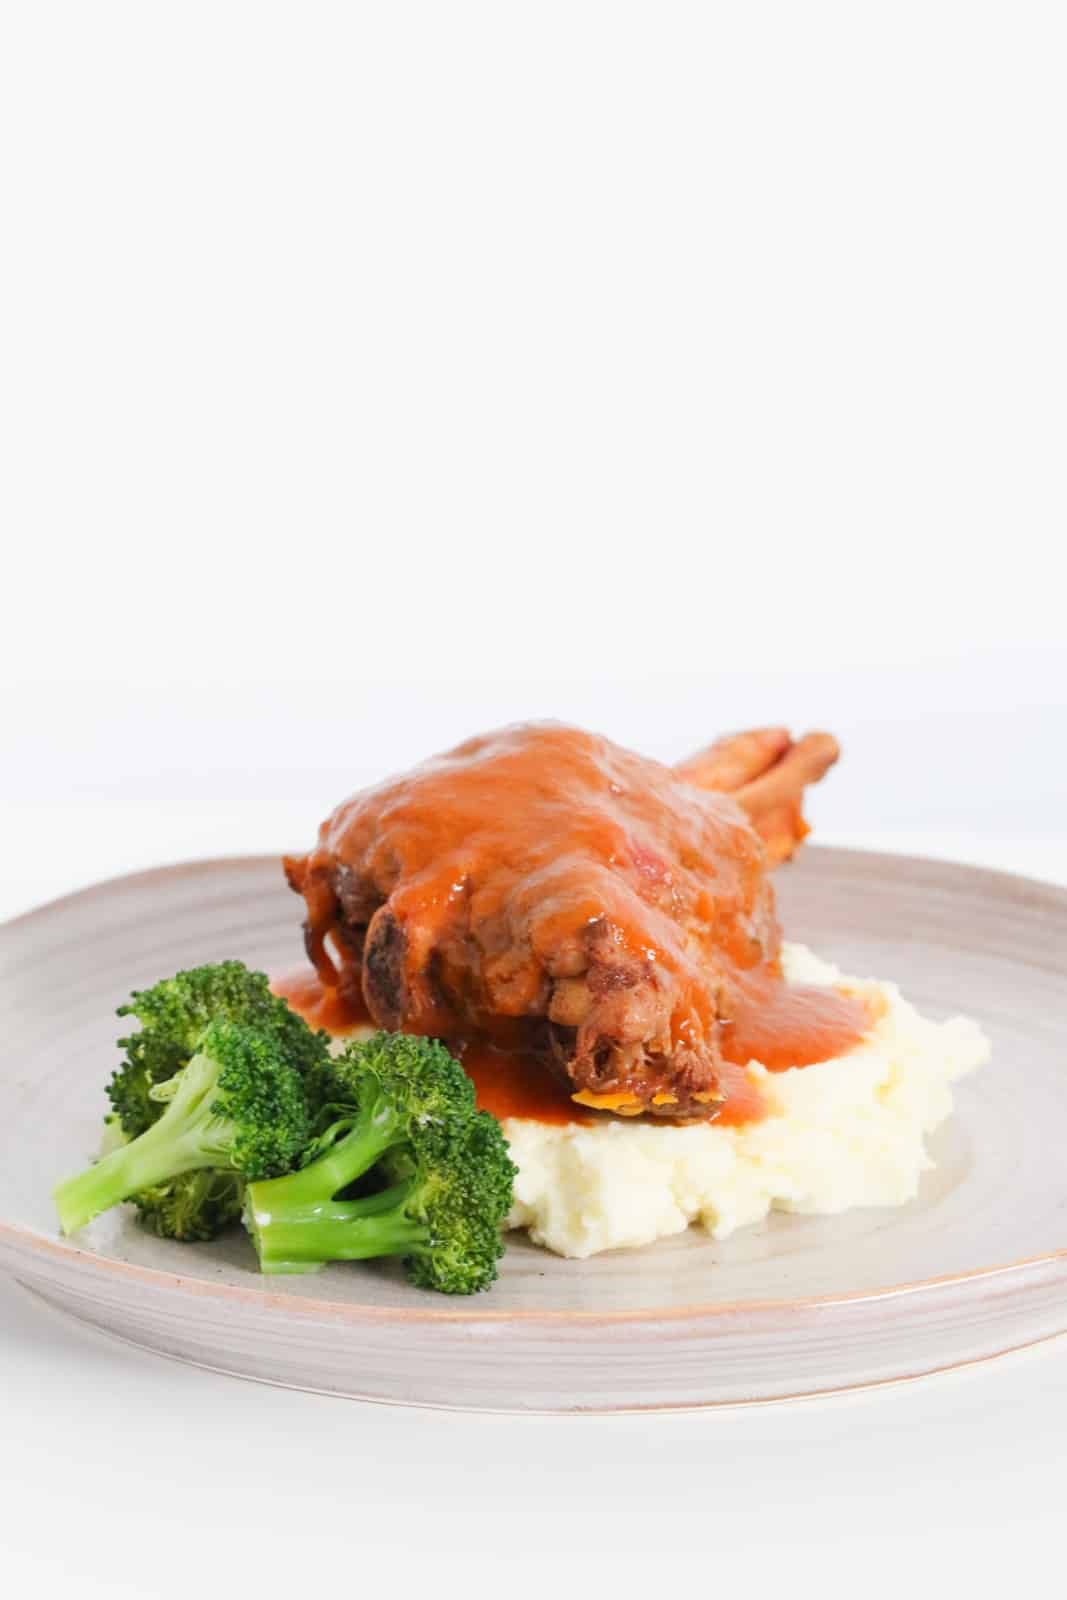 A lamb shank covered in a rich tomato gravy arranged on a bed of mash with broccoli florets.